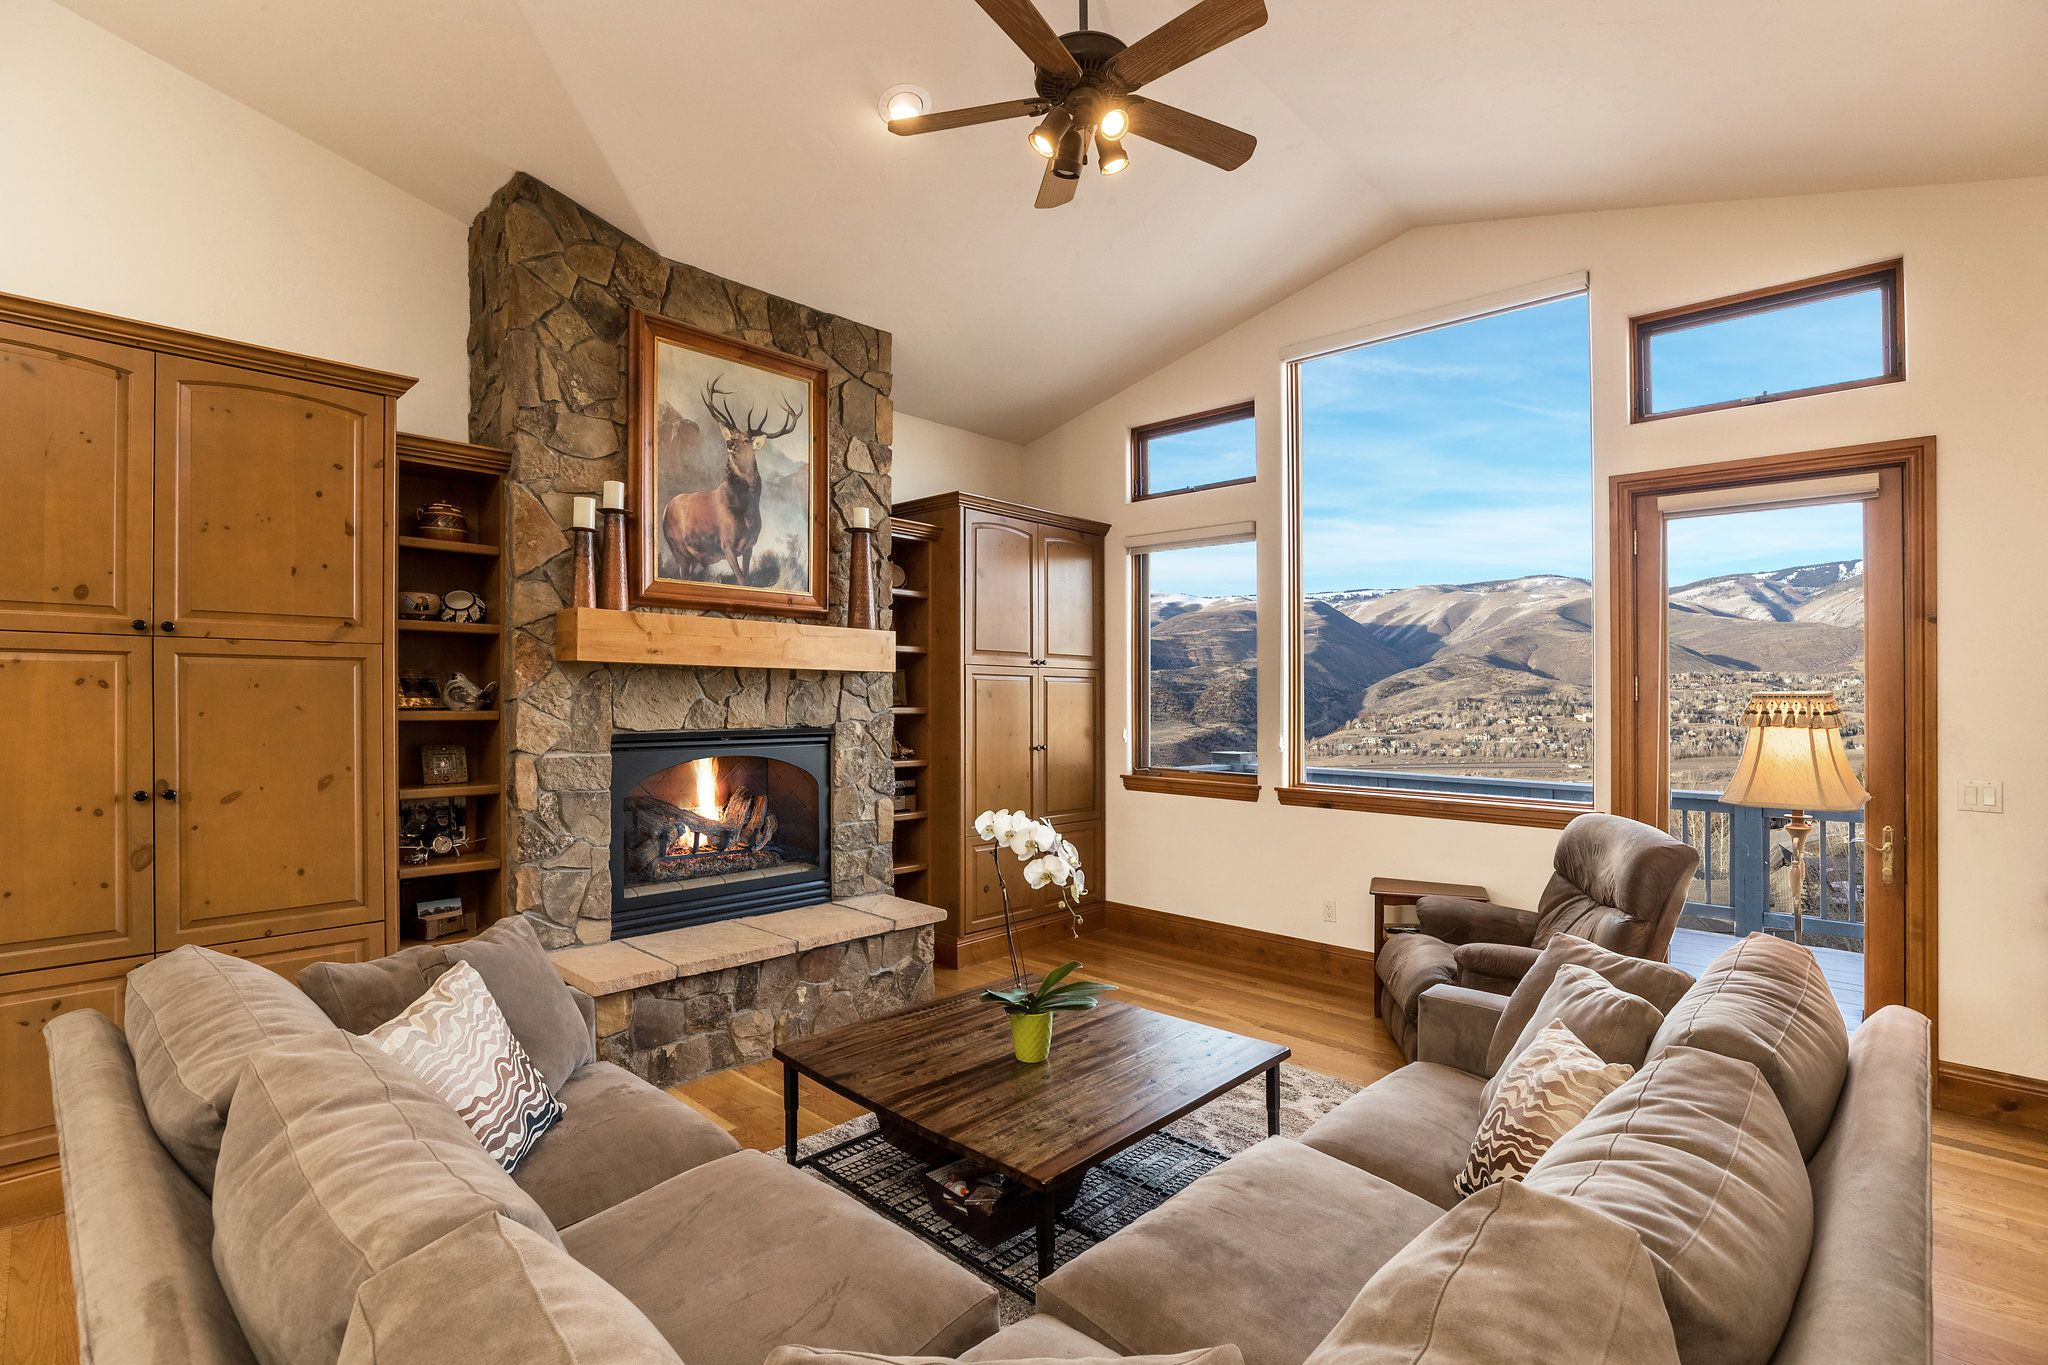 869 Gold Dust Dr Apt B, Edwards, CO 81632 | RealEstate.com